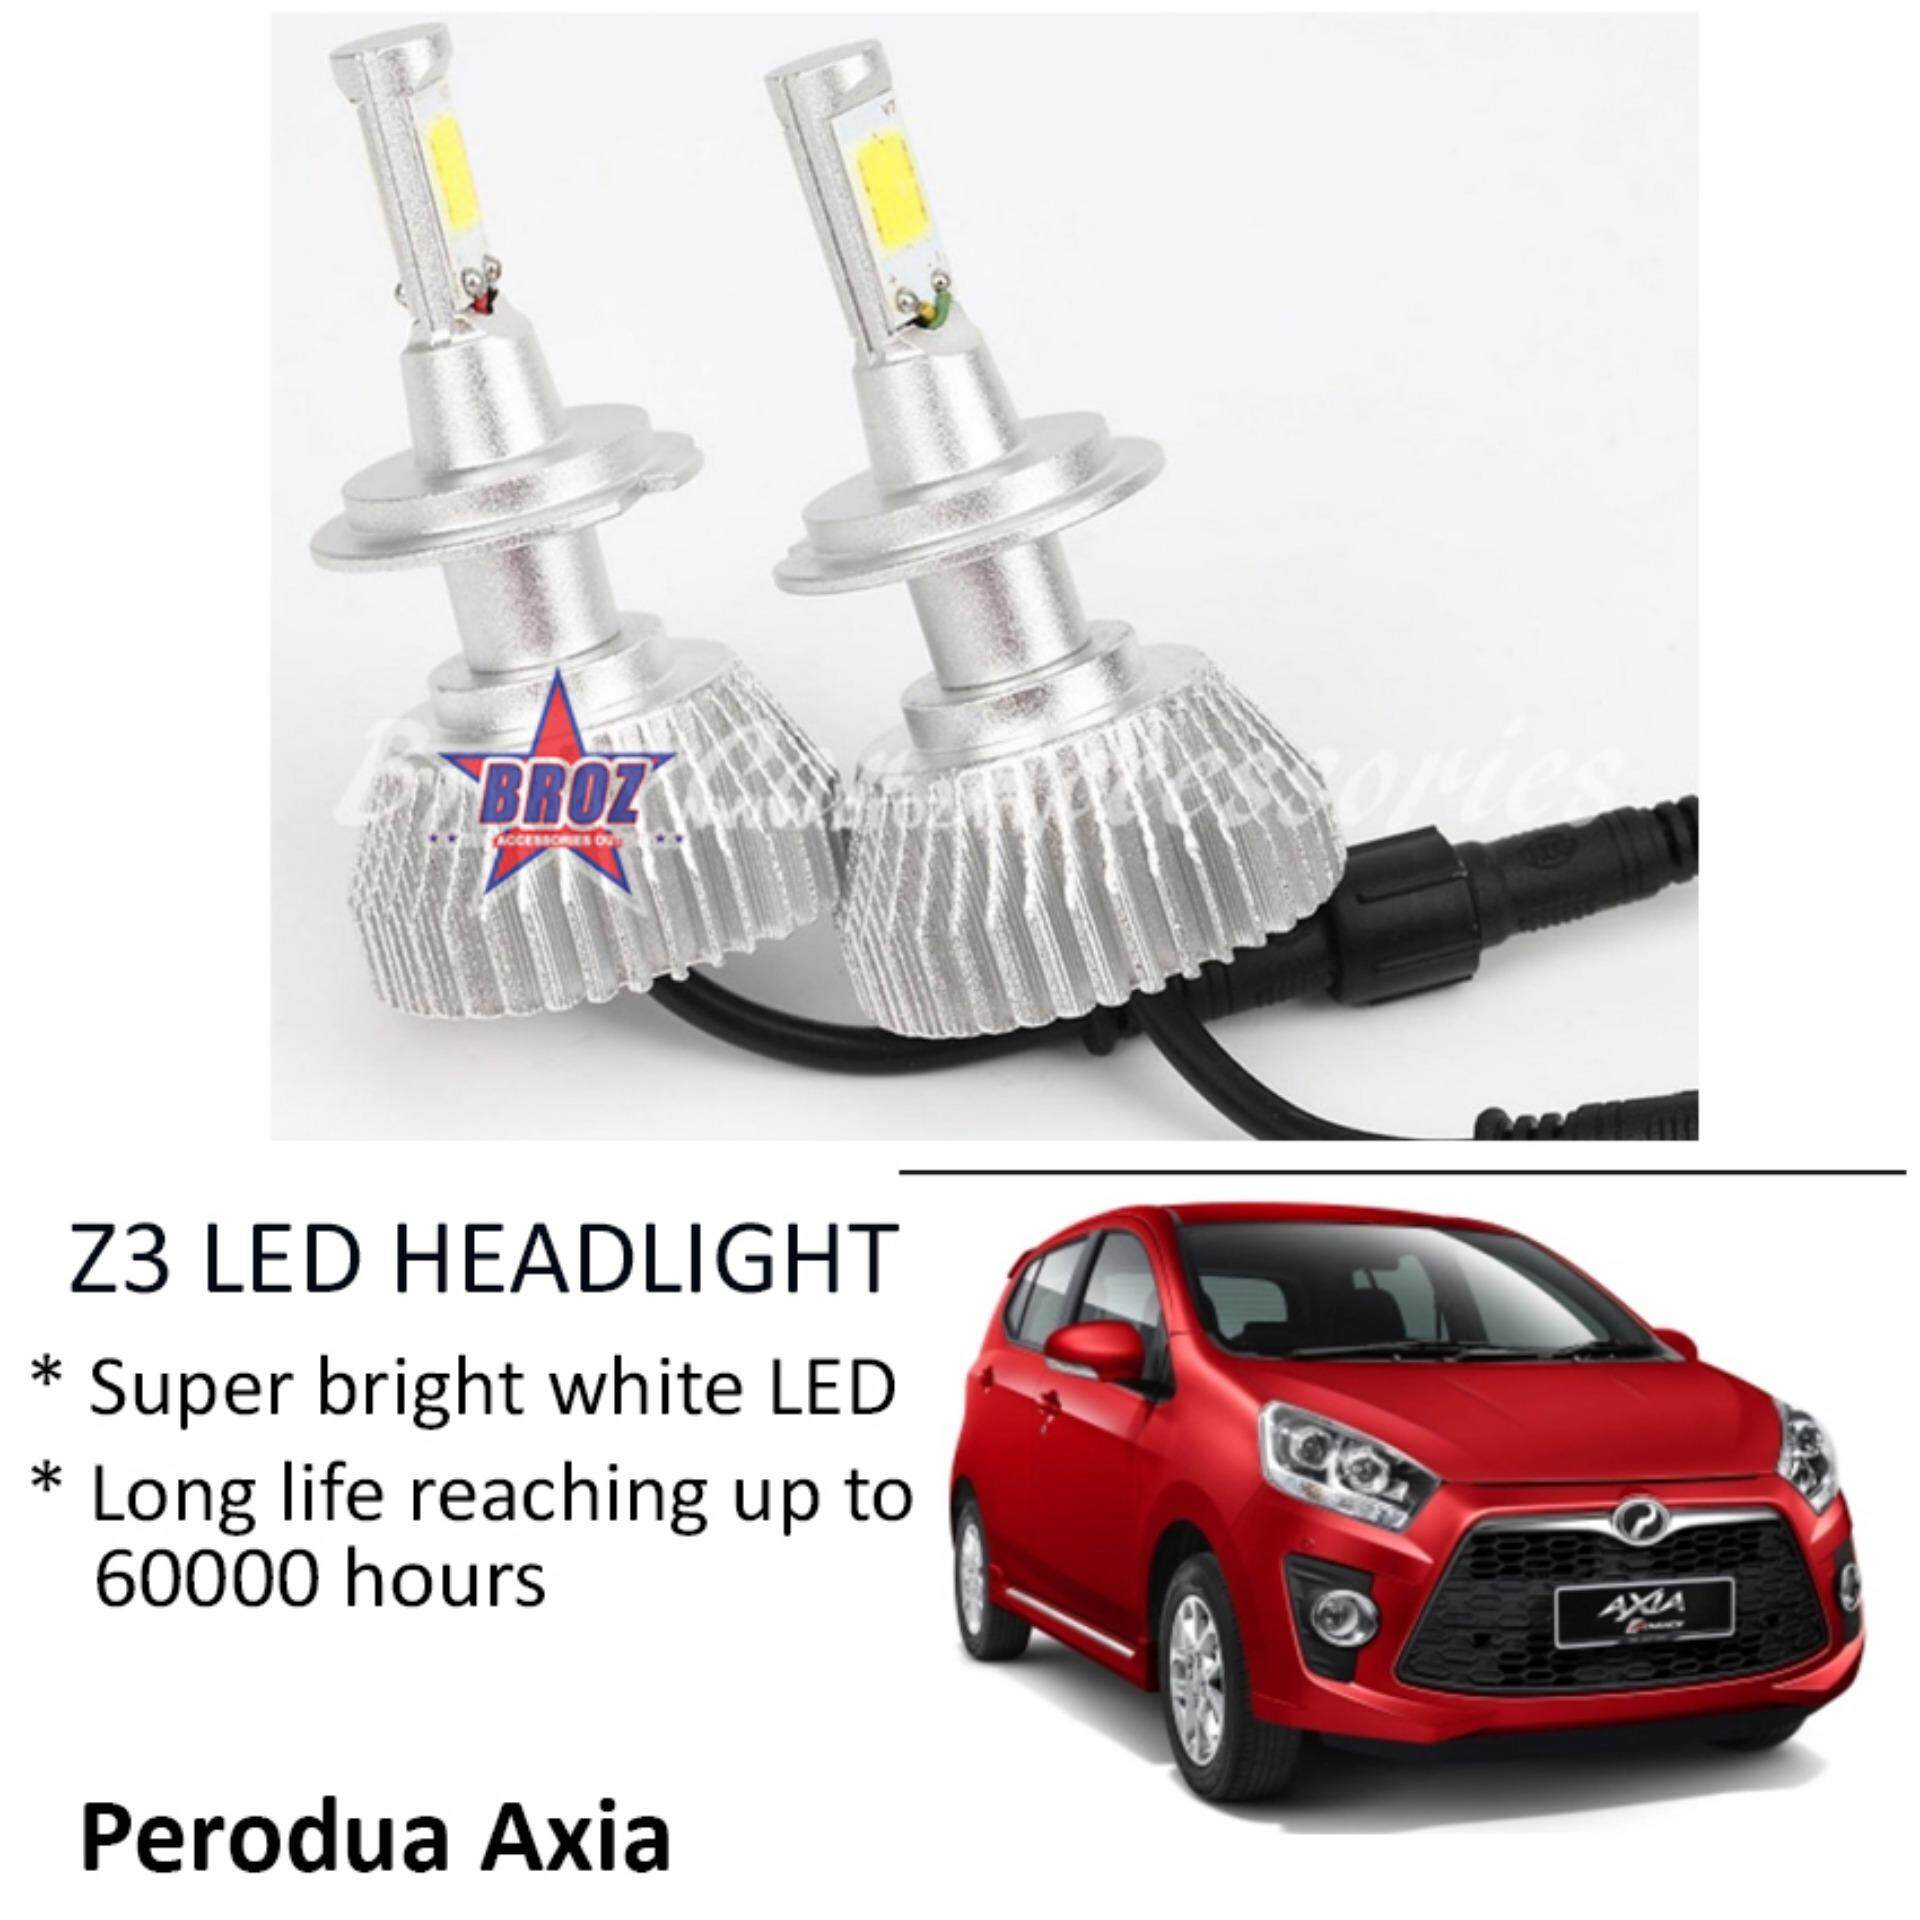 Perodua Axia (Head Lamp) Z3 LED Light Car Headlight Auto Head light Lamp 6000k White Light